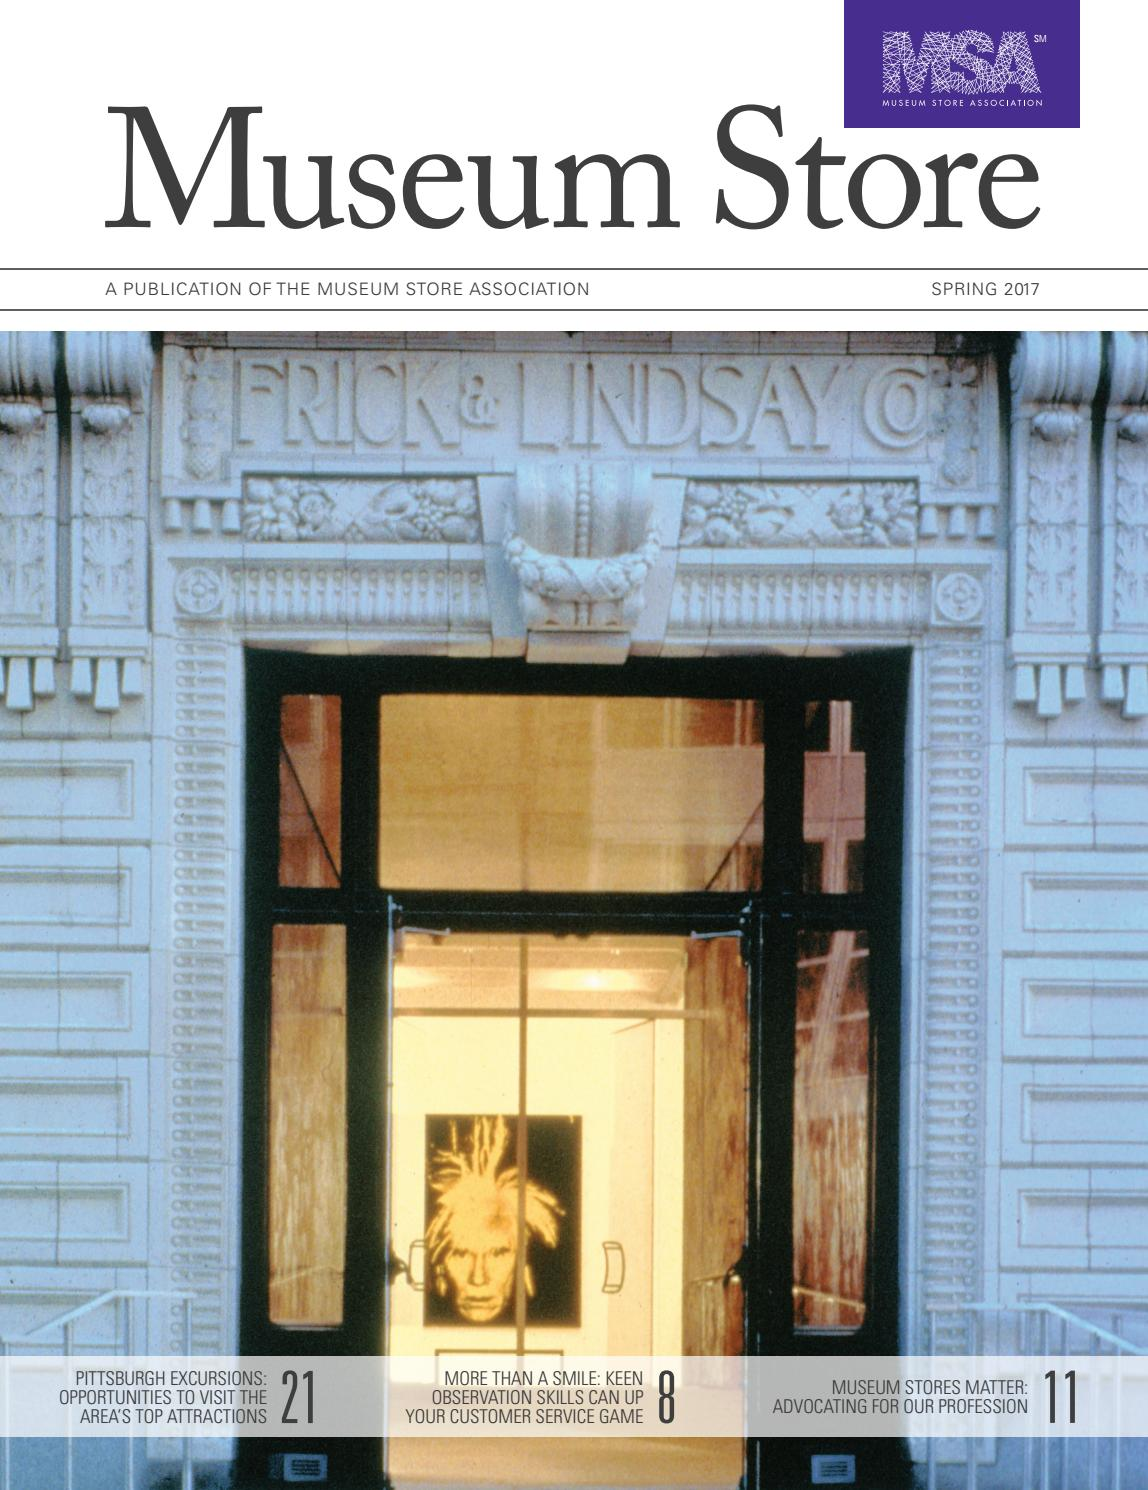 Museum Store Spring 2017 By Association Issuu Squishy Circuits Makers As Innovators Hardcover Target